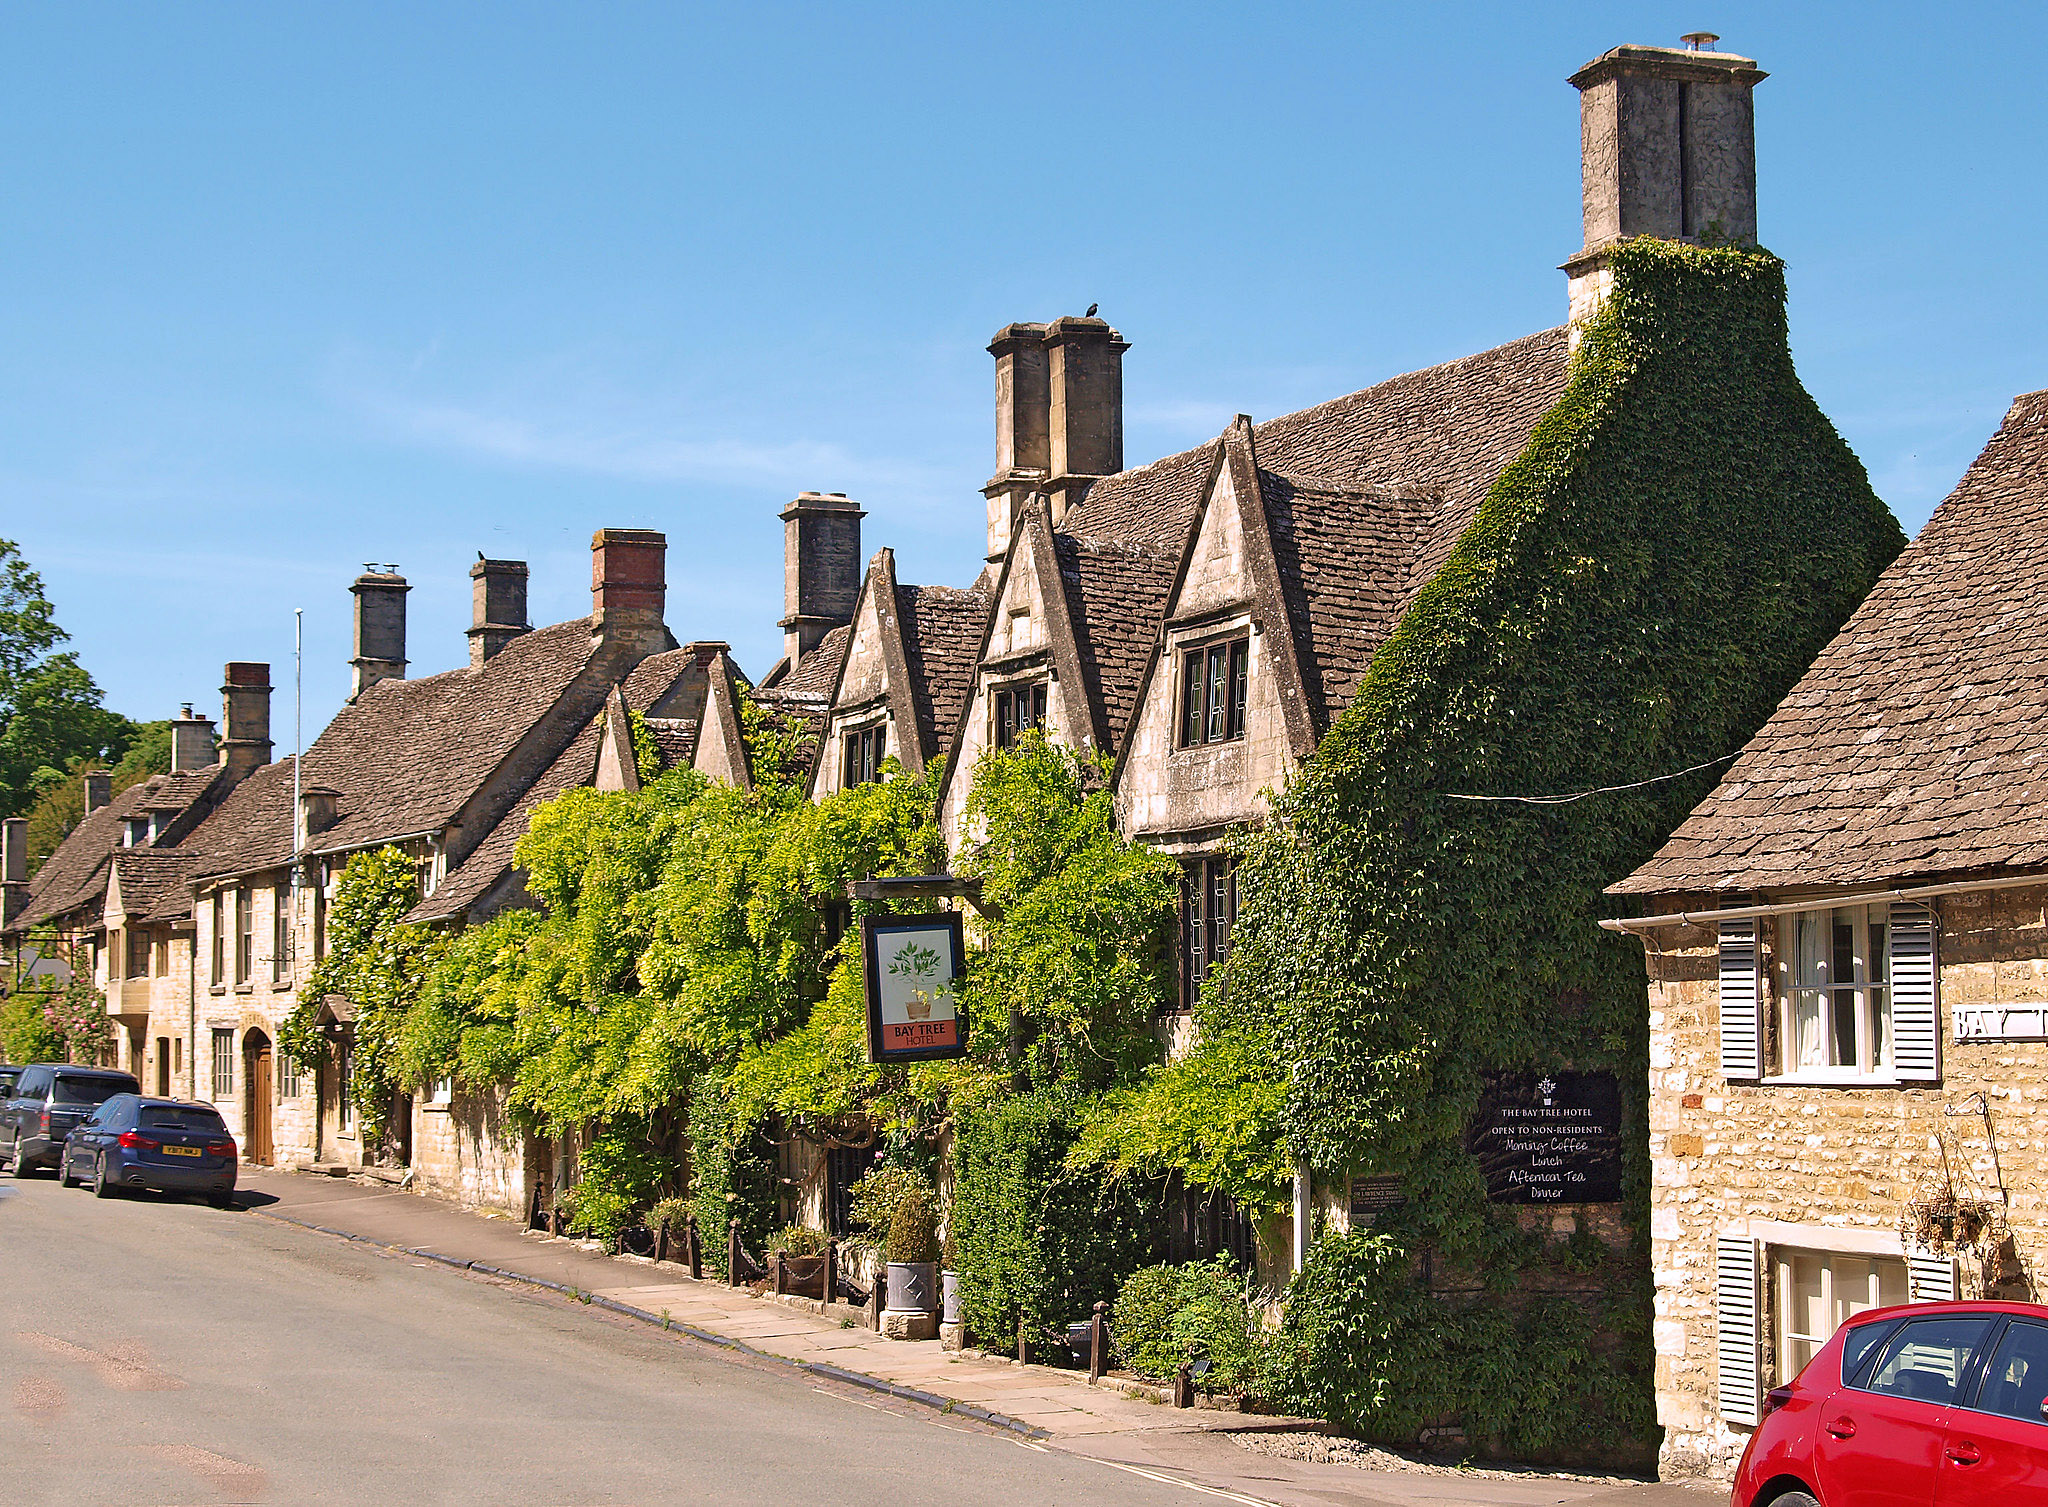 The Bay Tree, Sheep St. Burford, Oxfordshire by Andrew S Brown.jpg